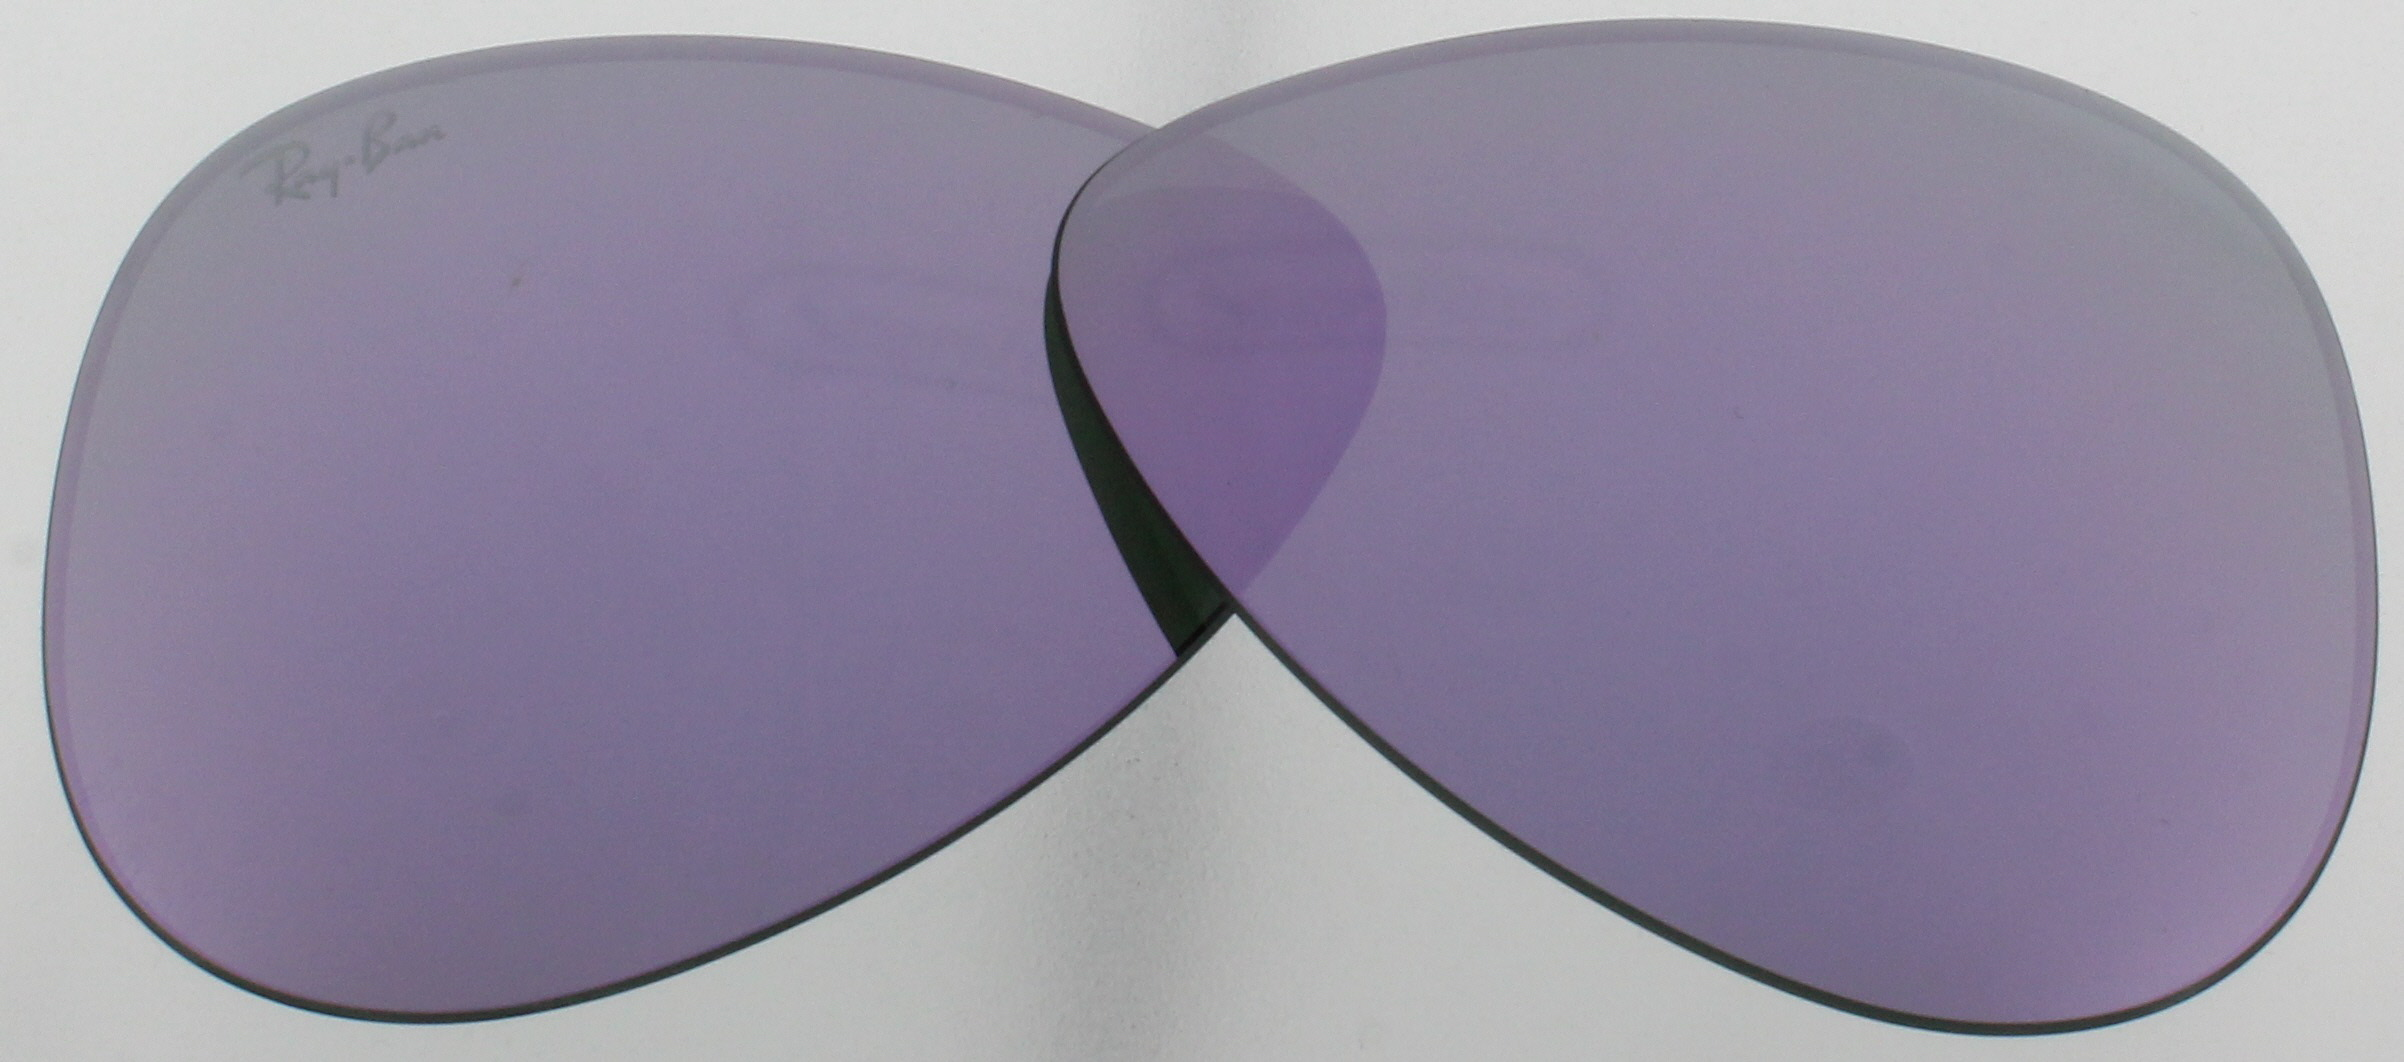 c0952c203dca Image is loading RAY-BAN-JR-Replacement-Lenses-RJ9506S-Lilac-Flash-